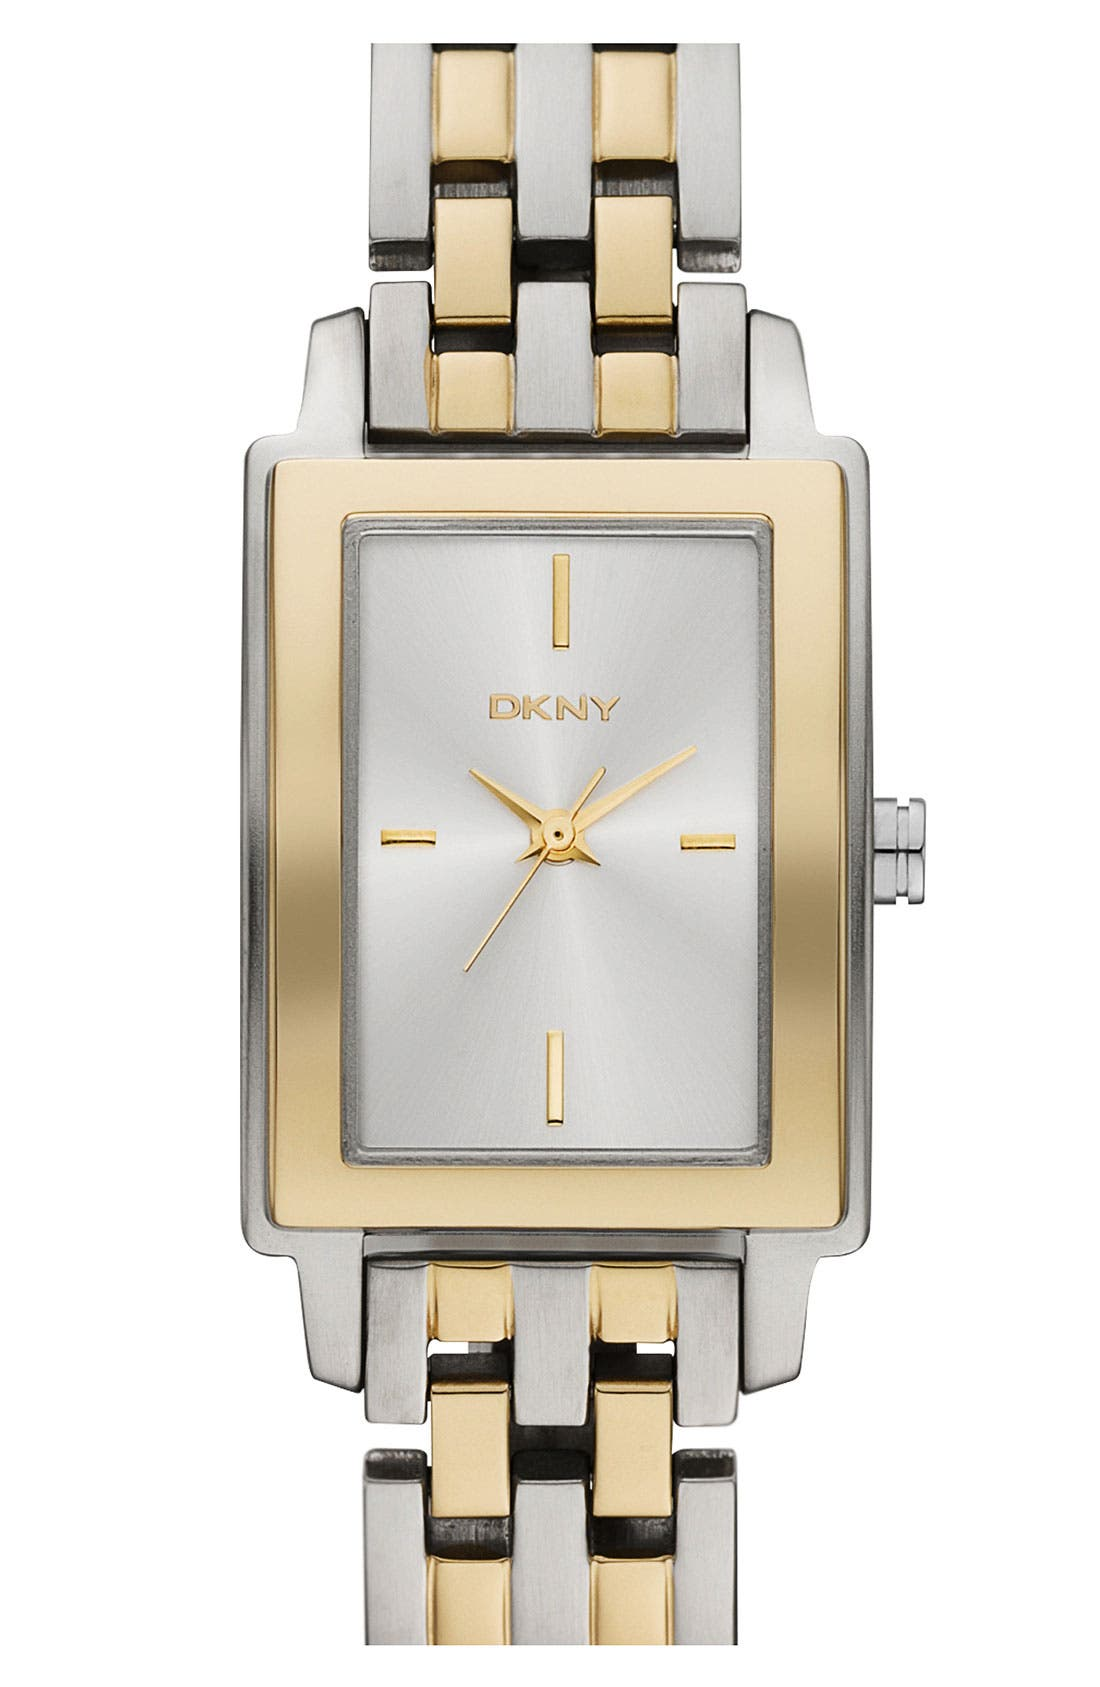 Main Image - DKNY Rectangular Bracelet Watch, 23mm x 28mm